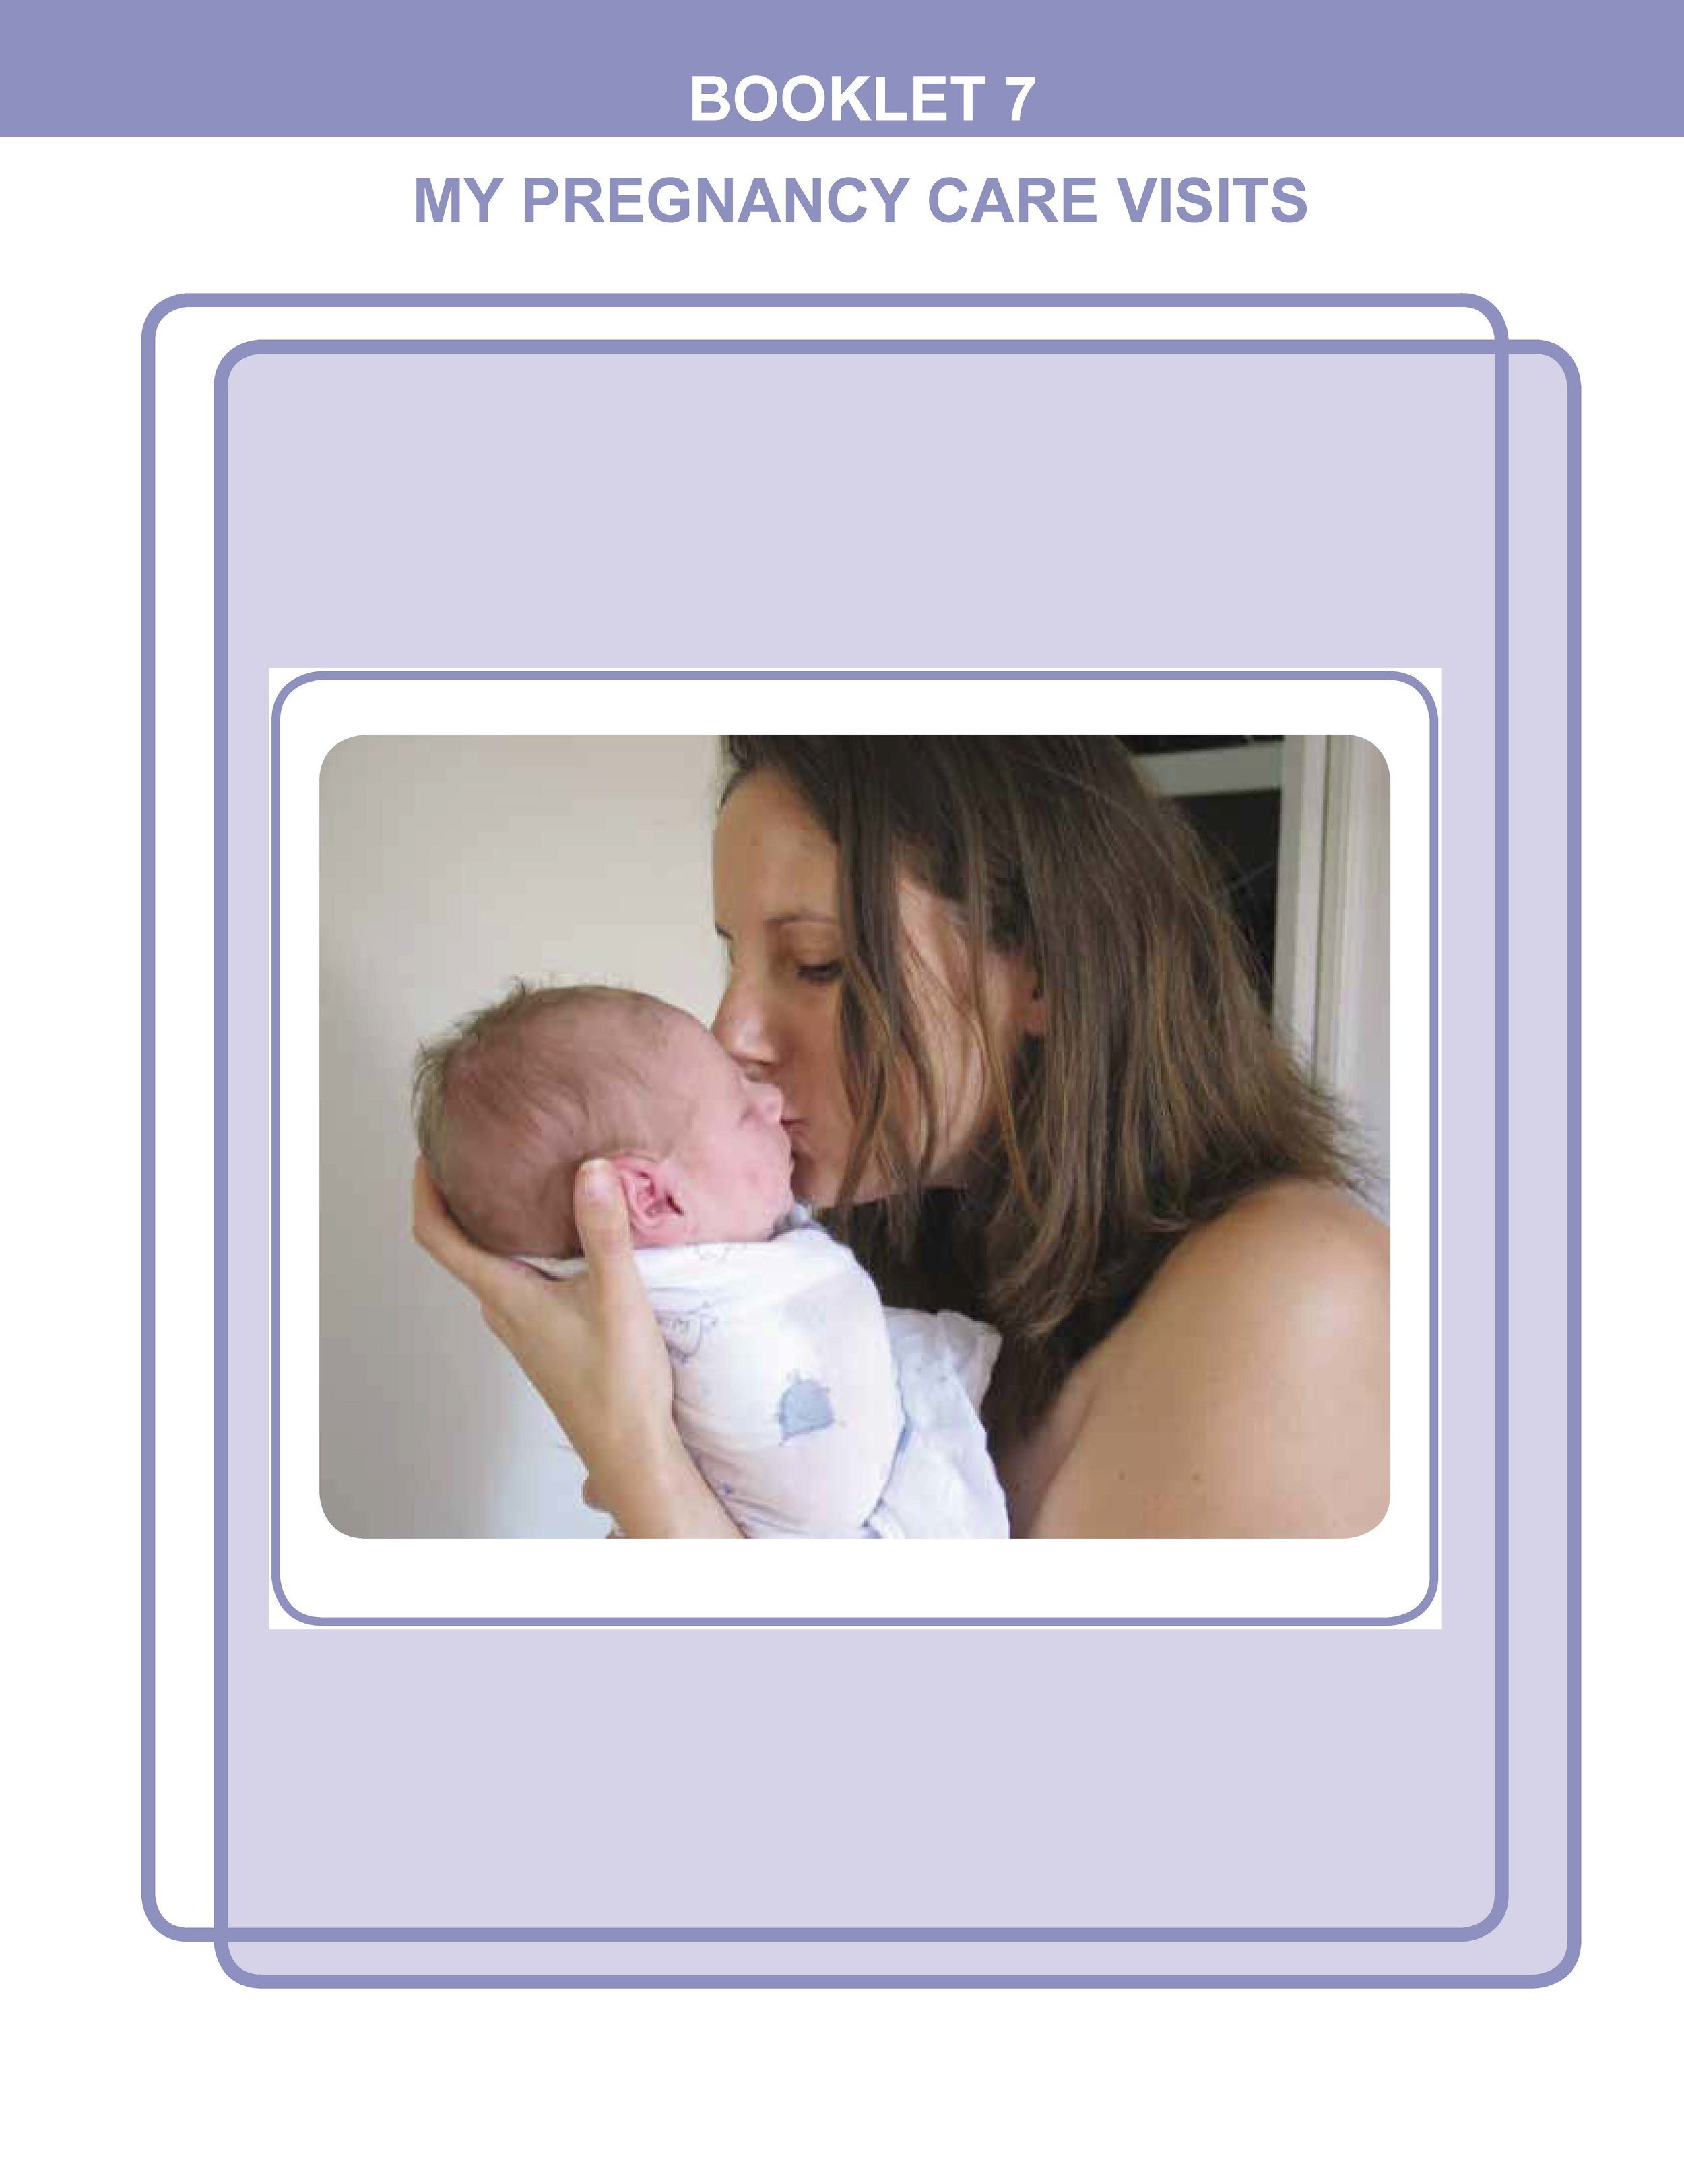 Booklet 7 is for you to write in. There is one page for you to fill in before each visit to your midwife or doctor.